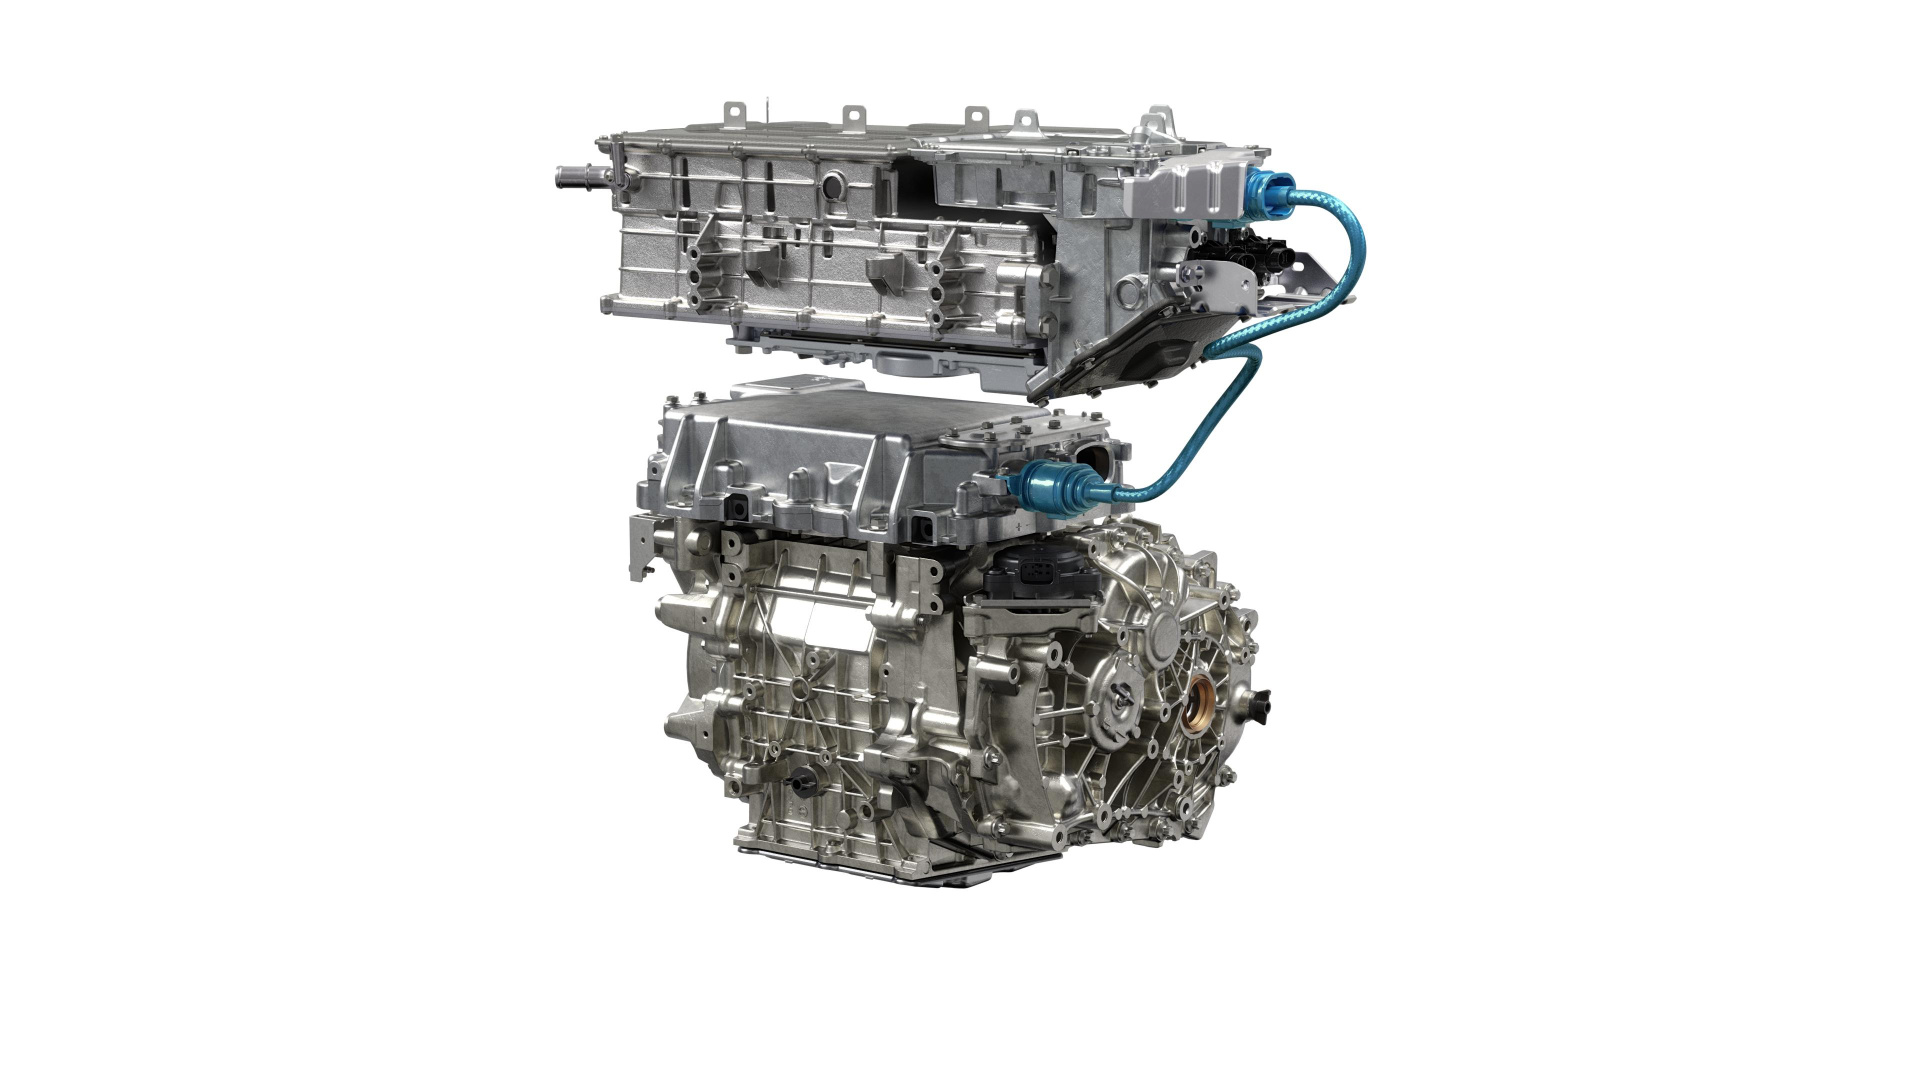 SMALL_9-2020 - Renault electric powertrain